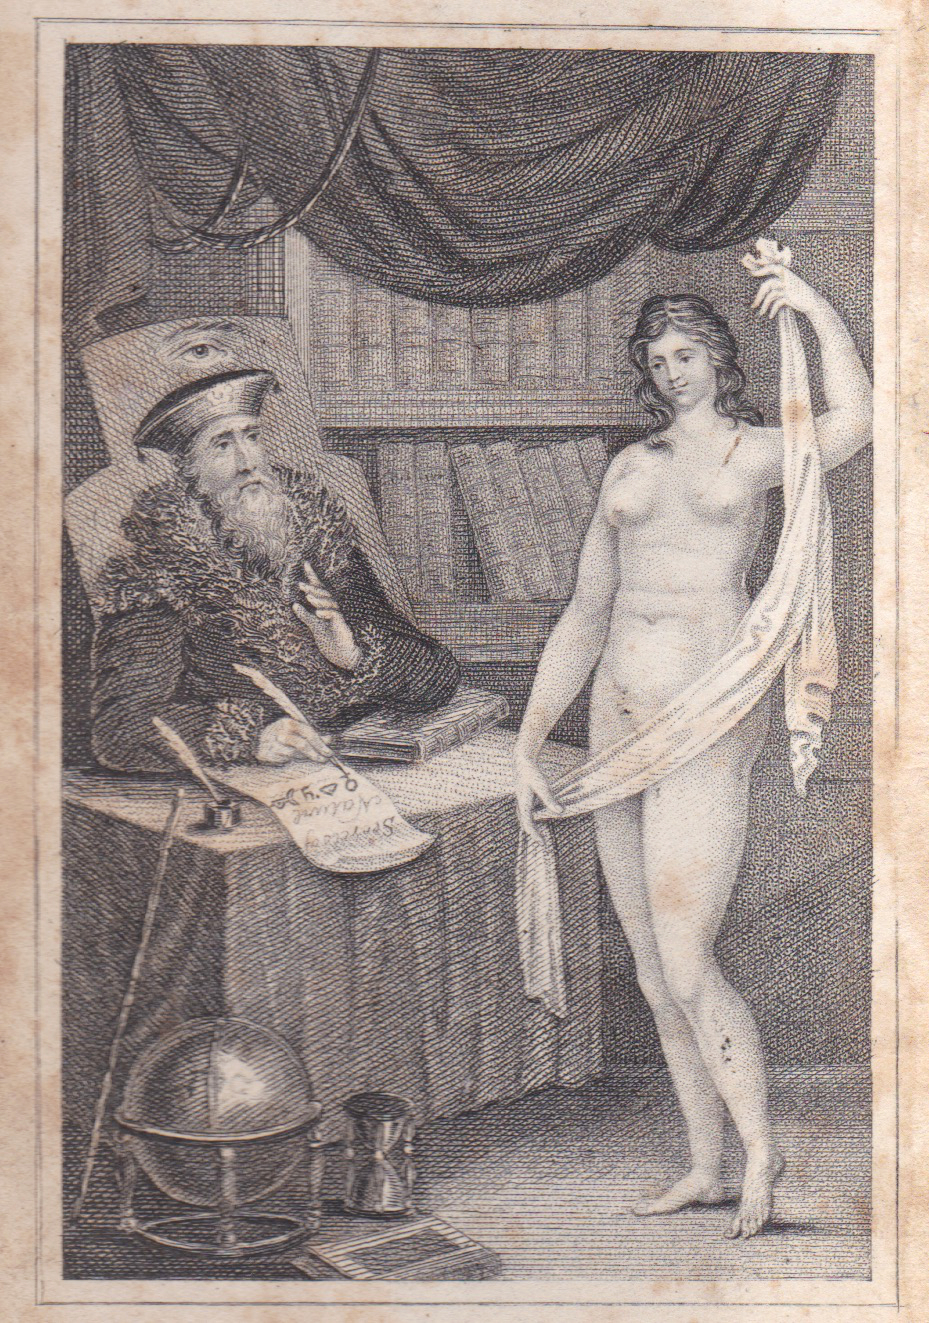 Frontispiece to an 1820s edition of 'Aristotle's Masterpiece', a spurious 17th century sex manual,  brilliantly covered here by Mary Fissell .